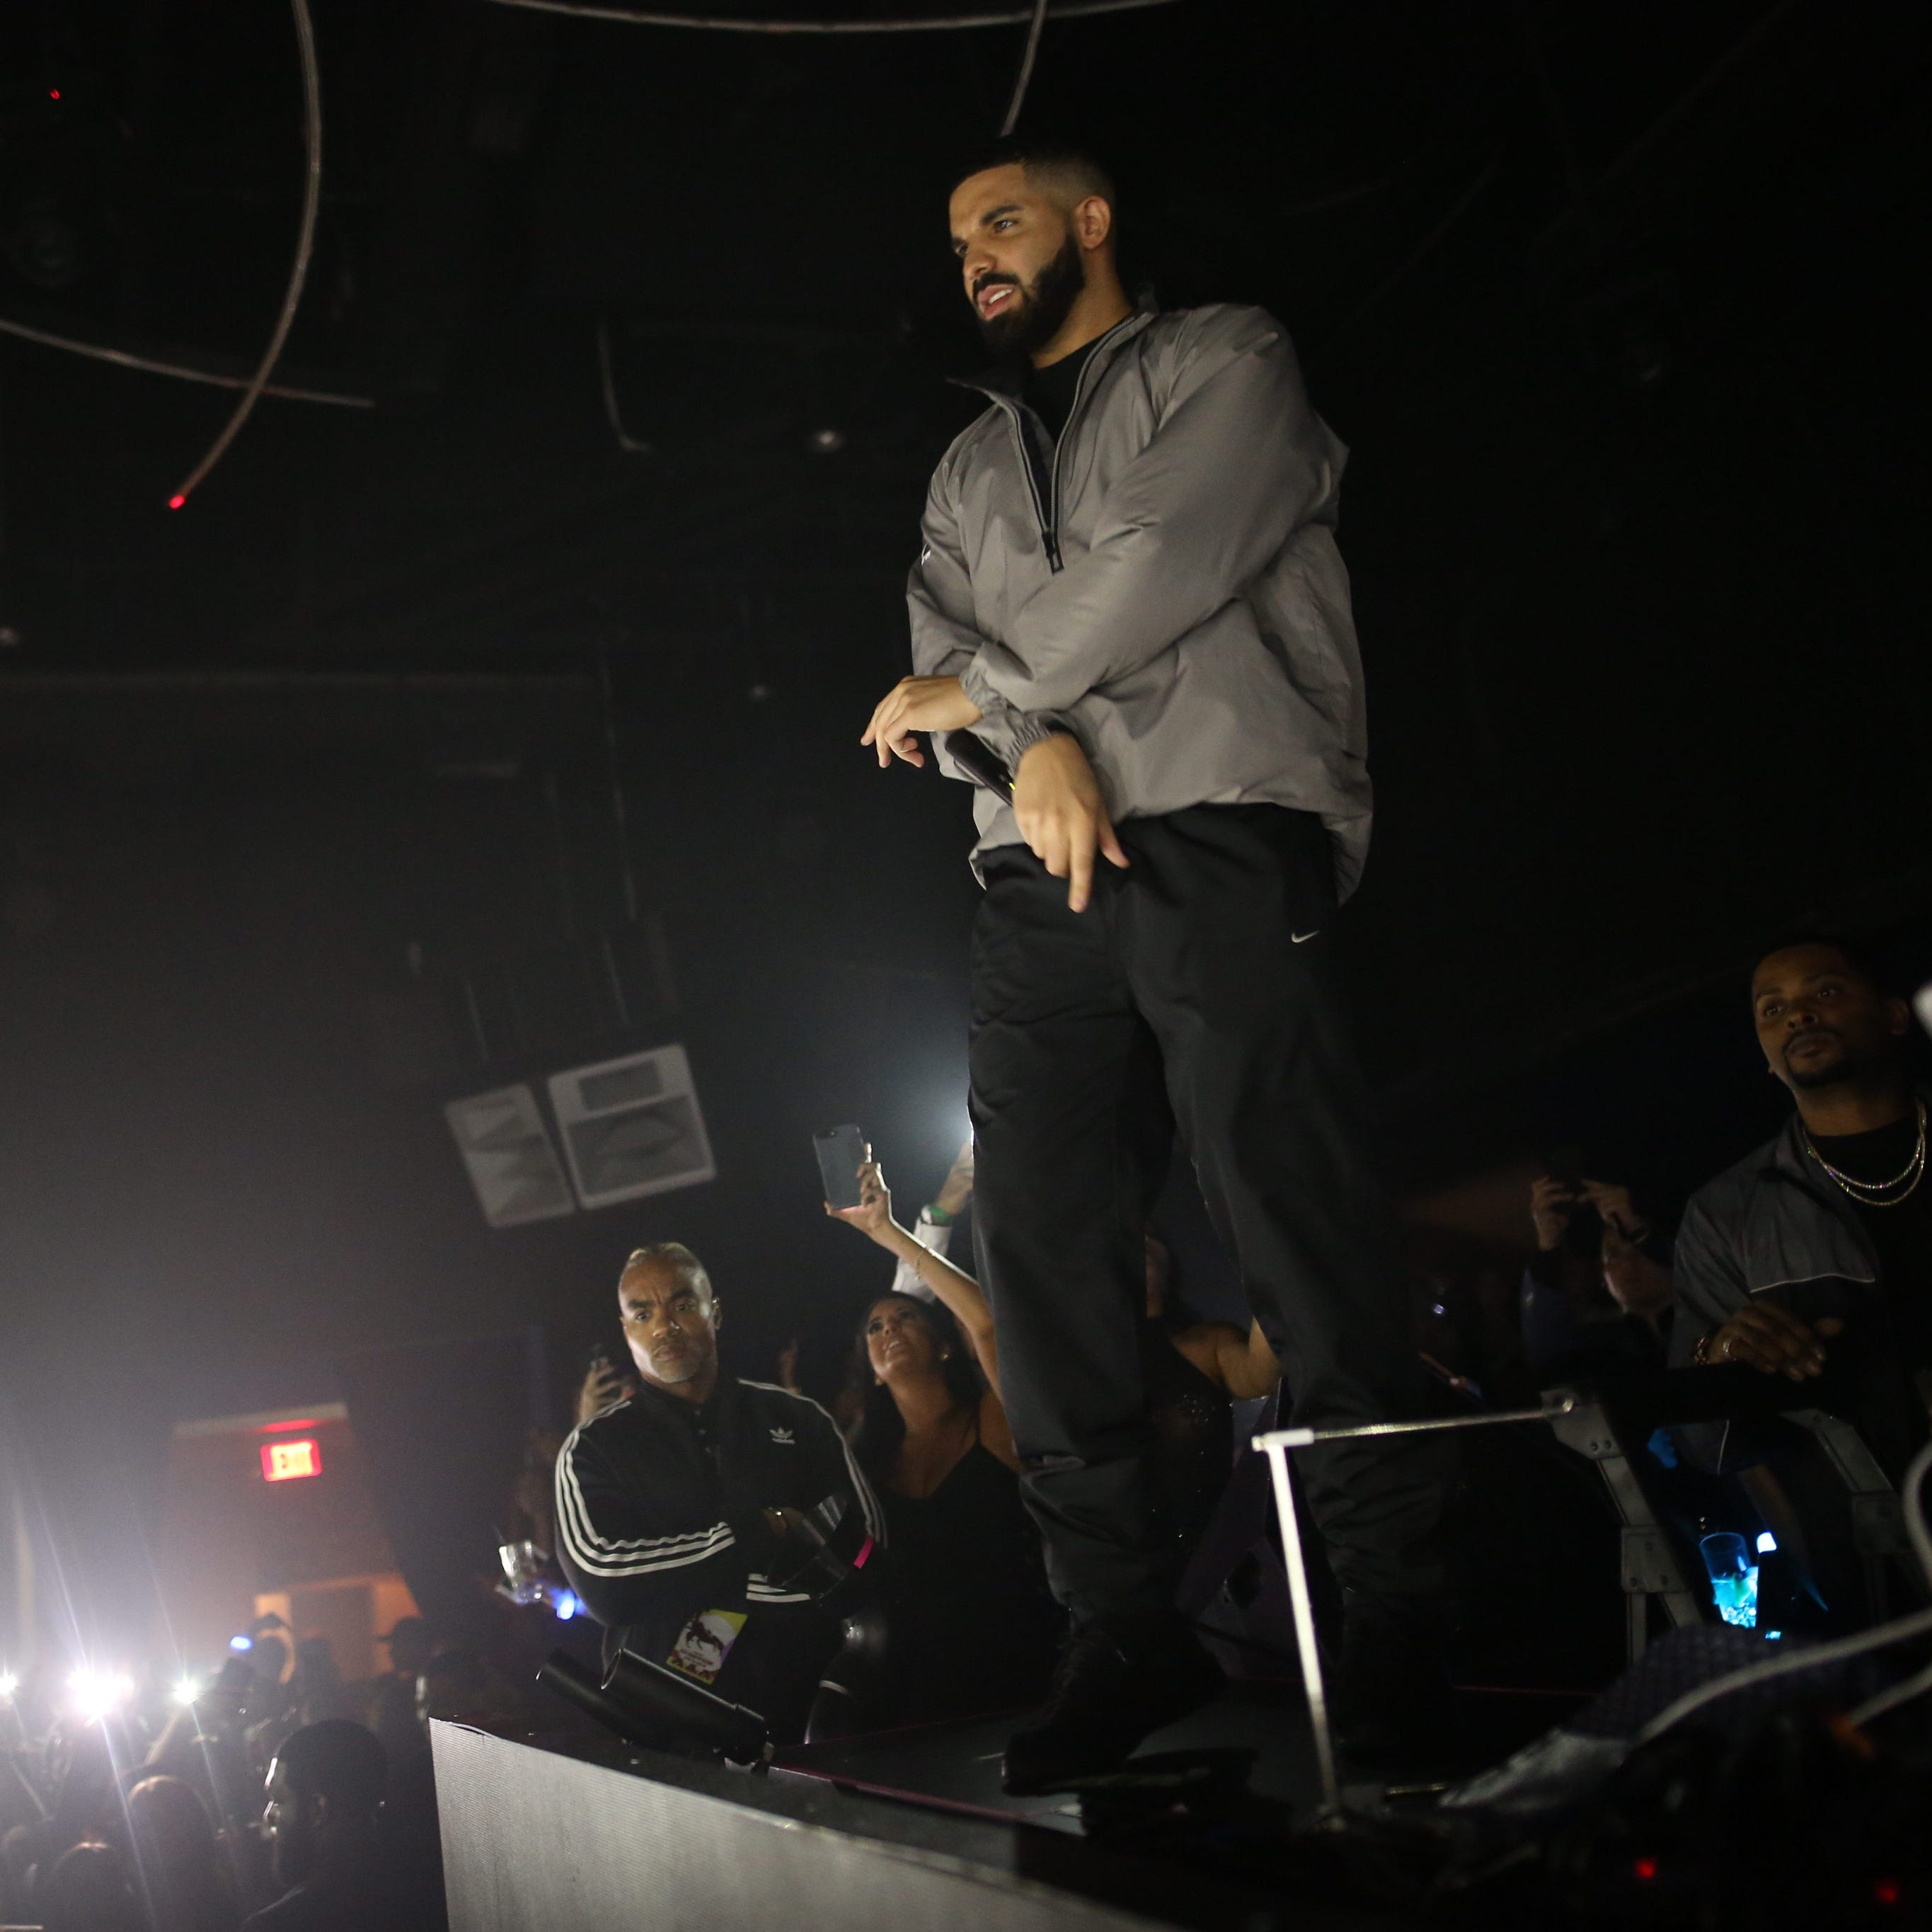 Drake performs at the Hard Rock in Atlantic City